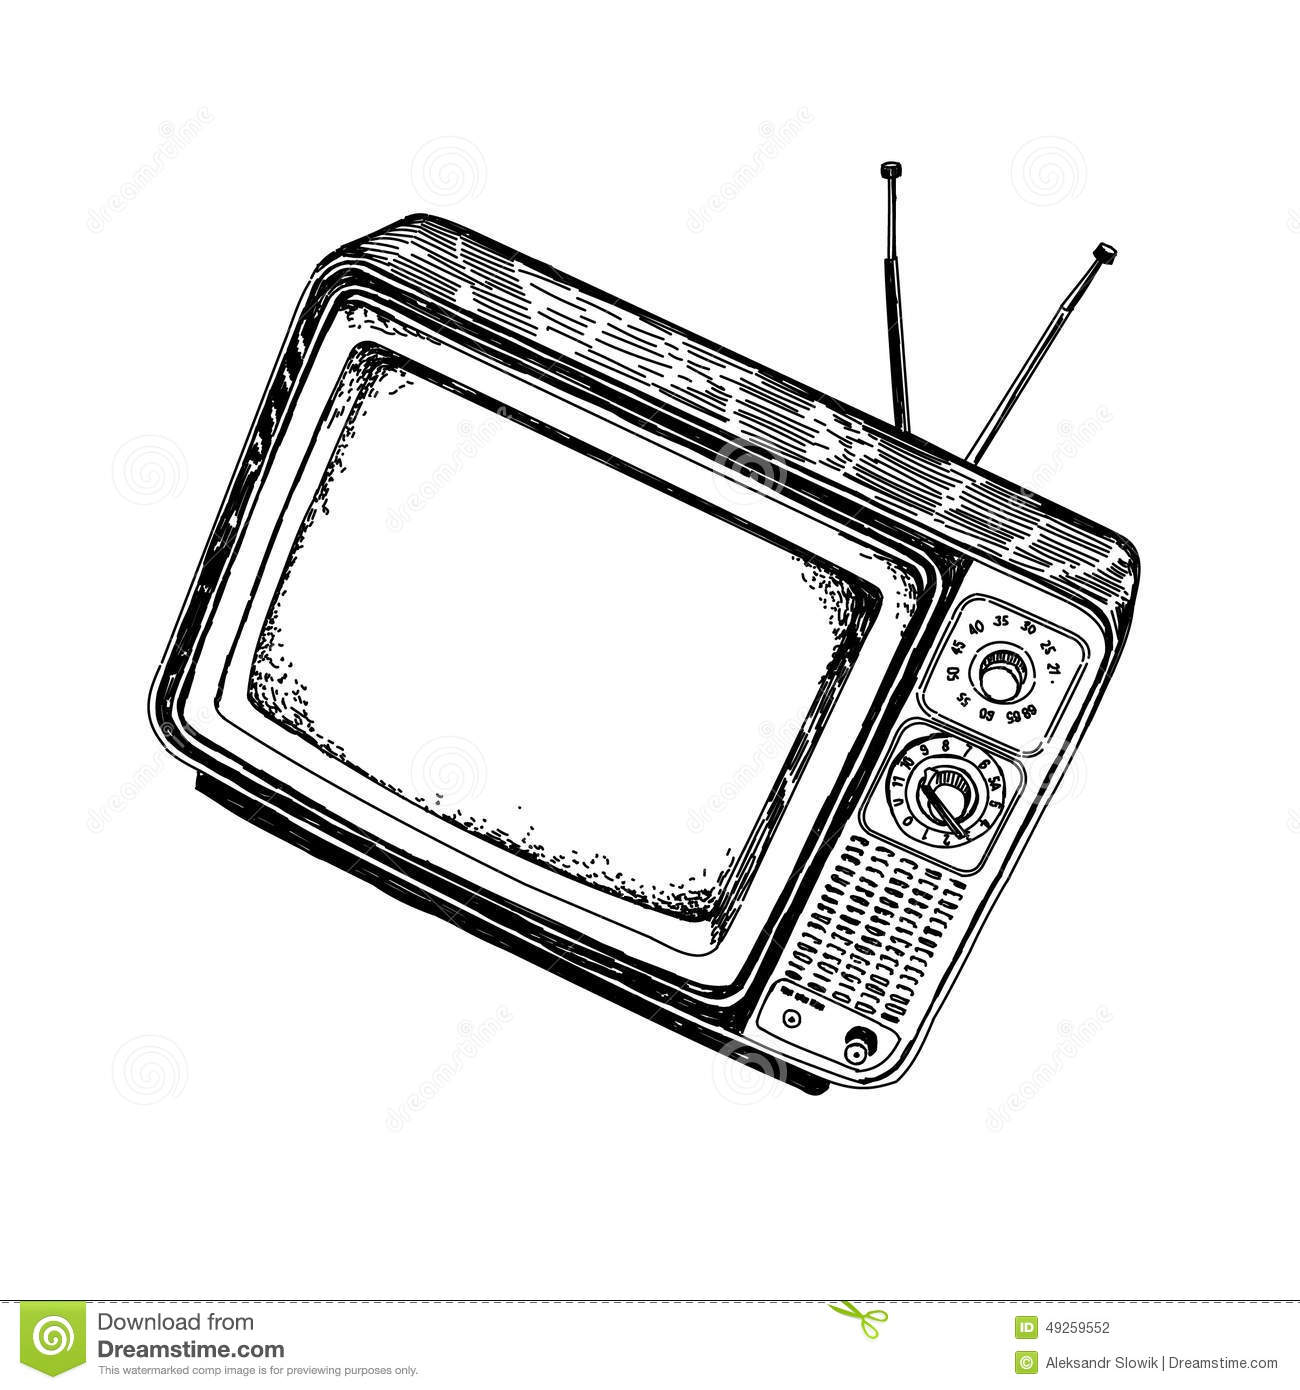 Vintage Television With Antennas Off Drawing Stock Vector